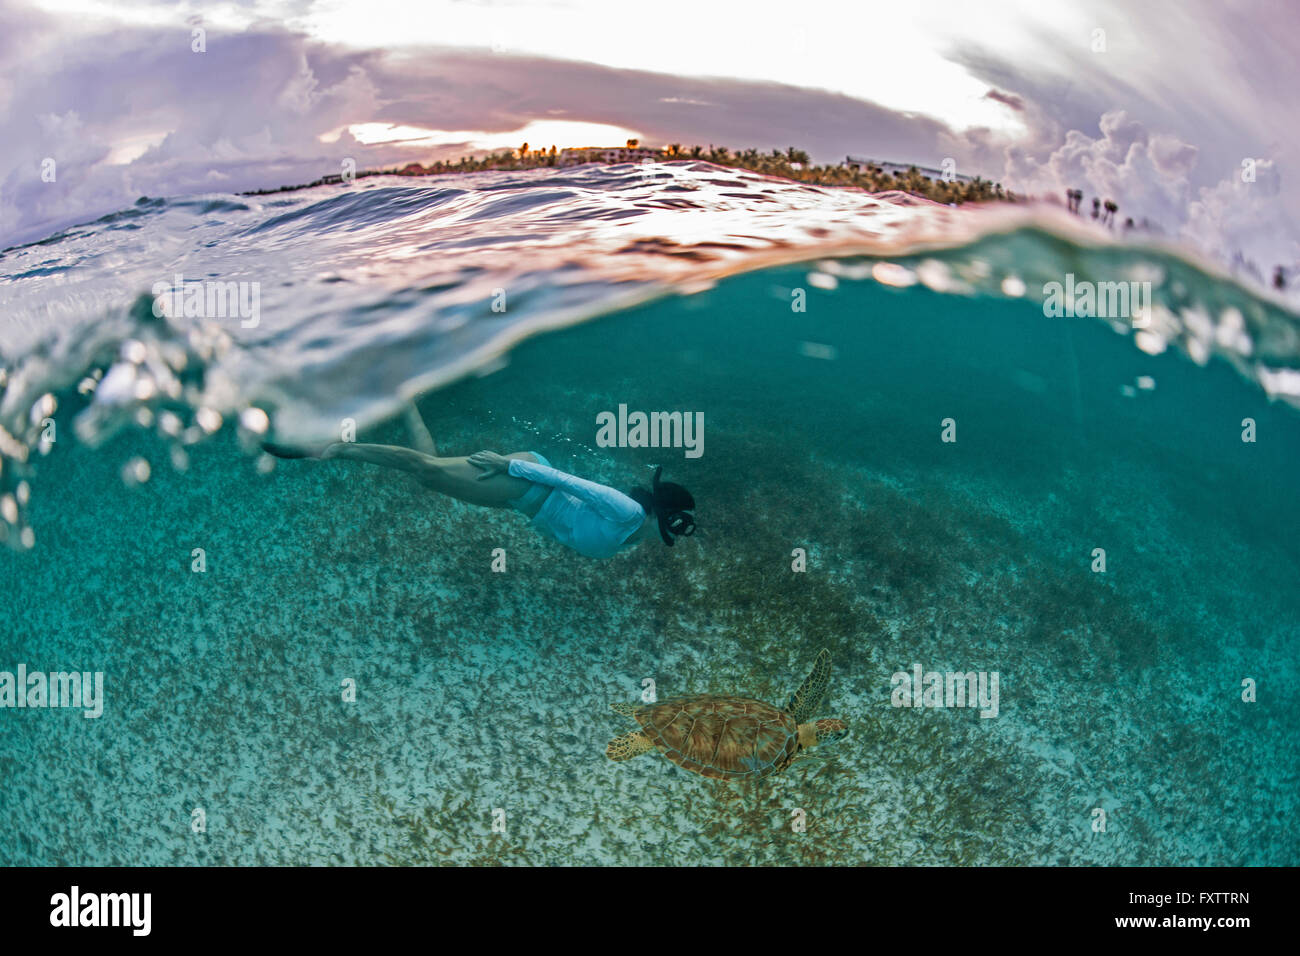 Snorkeler gets close to sea turtle in the shallows of Akumal Bay at sunset, Mexico - Stock Image